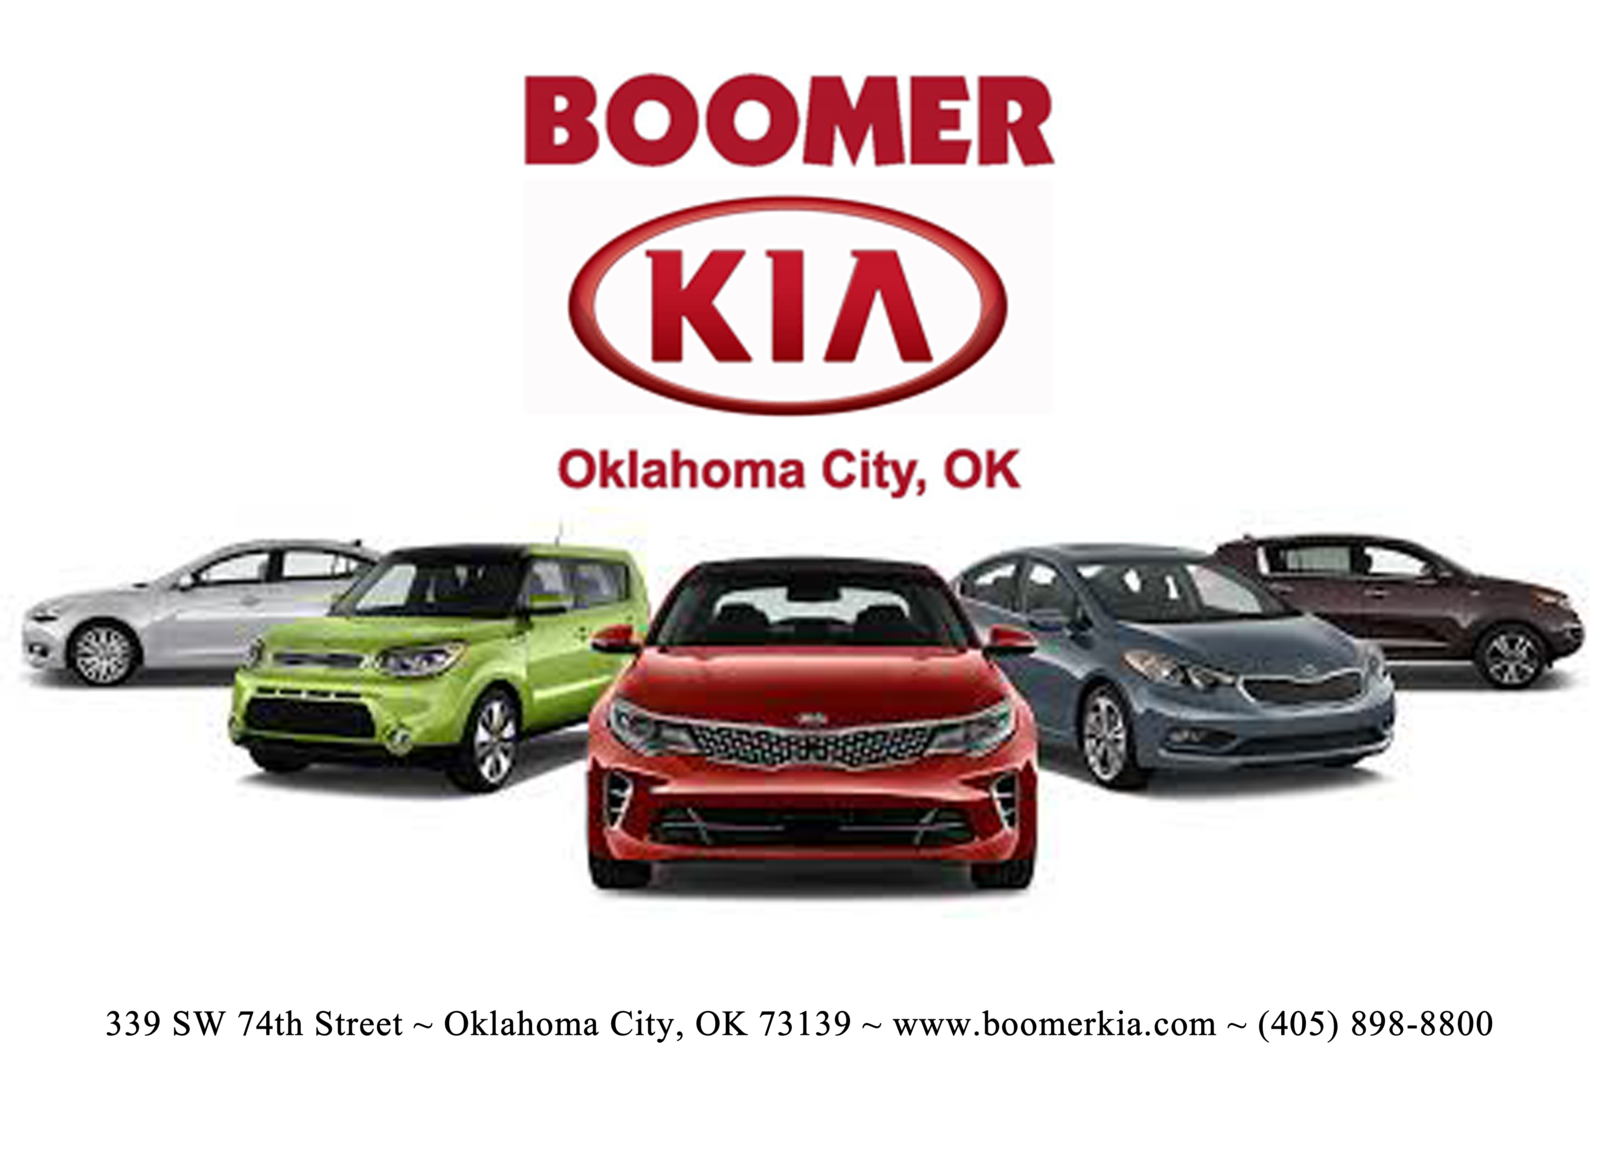 boomer kia oklahoma city ok lee evaluaciones de. Black Bedroom Furniture Sets. Home Design Ideas